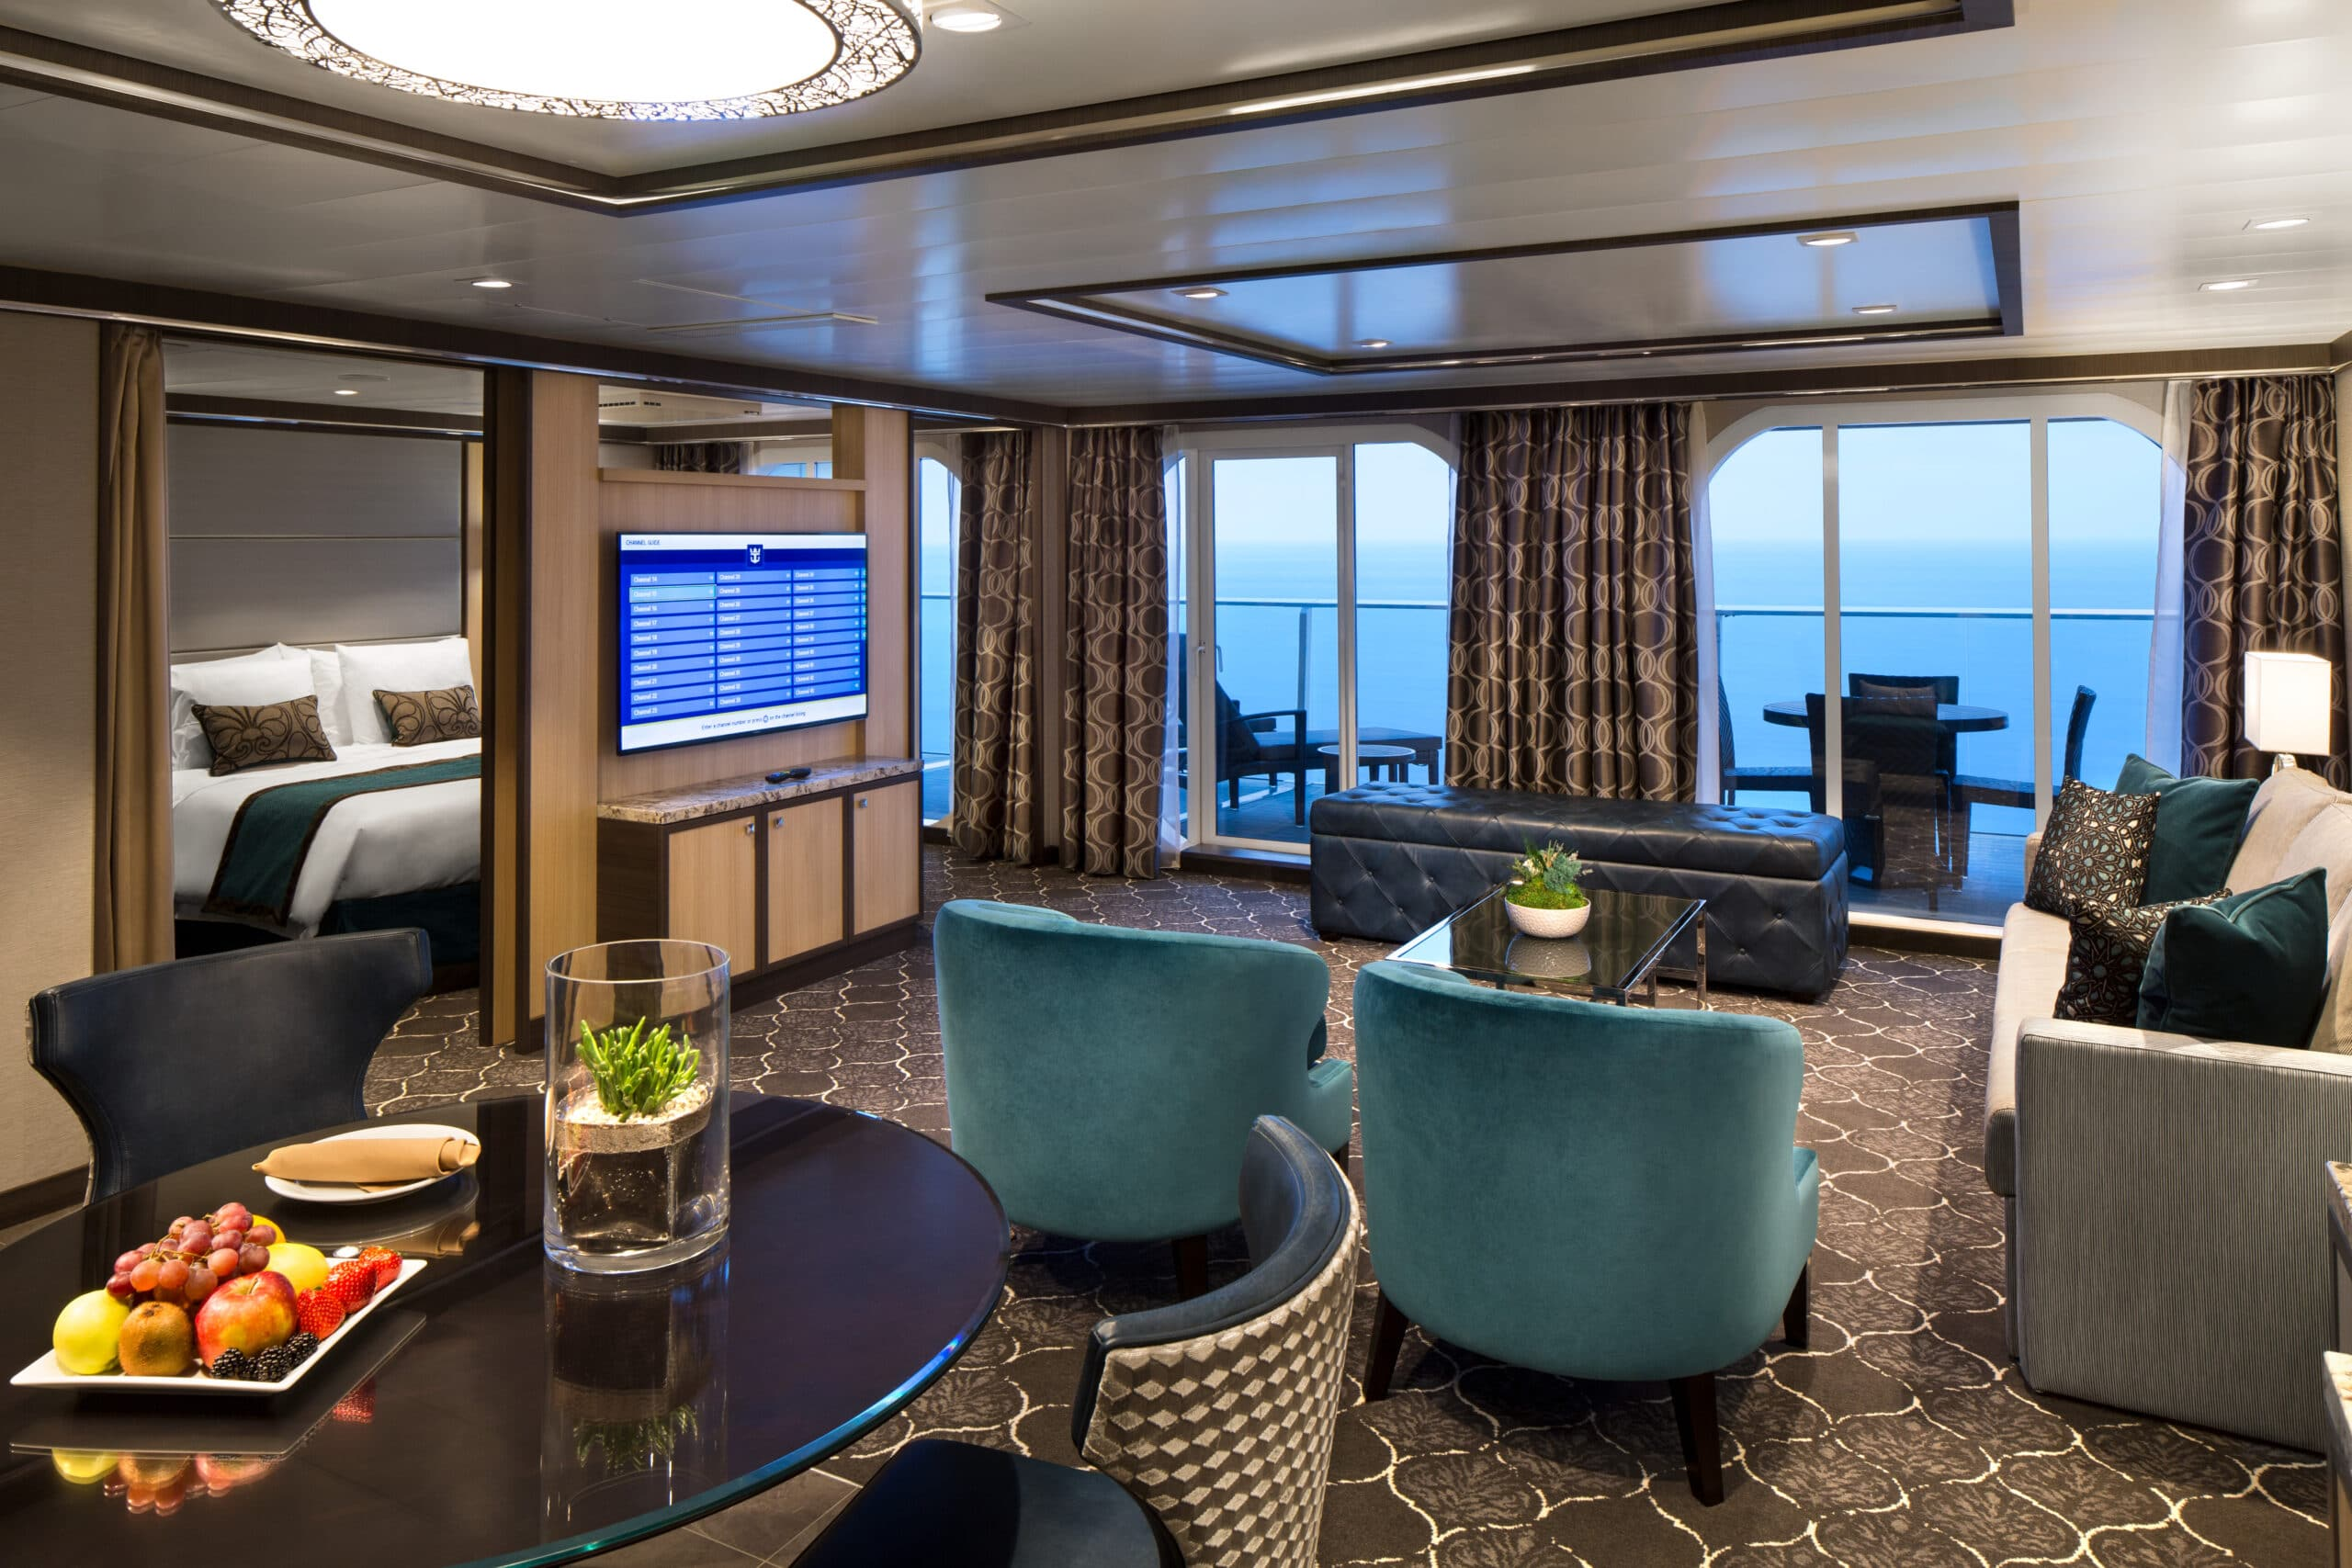 Royal-Caribbean-International-Harmony-of-the-Seas-Symphony-of-the-seas-schip-cruiseschip-categorie-OS-Owner-Suite